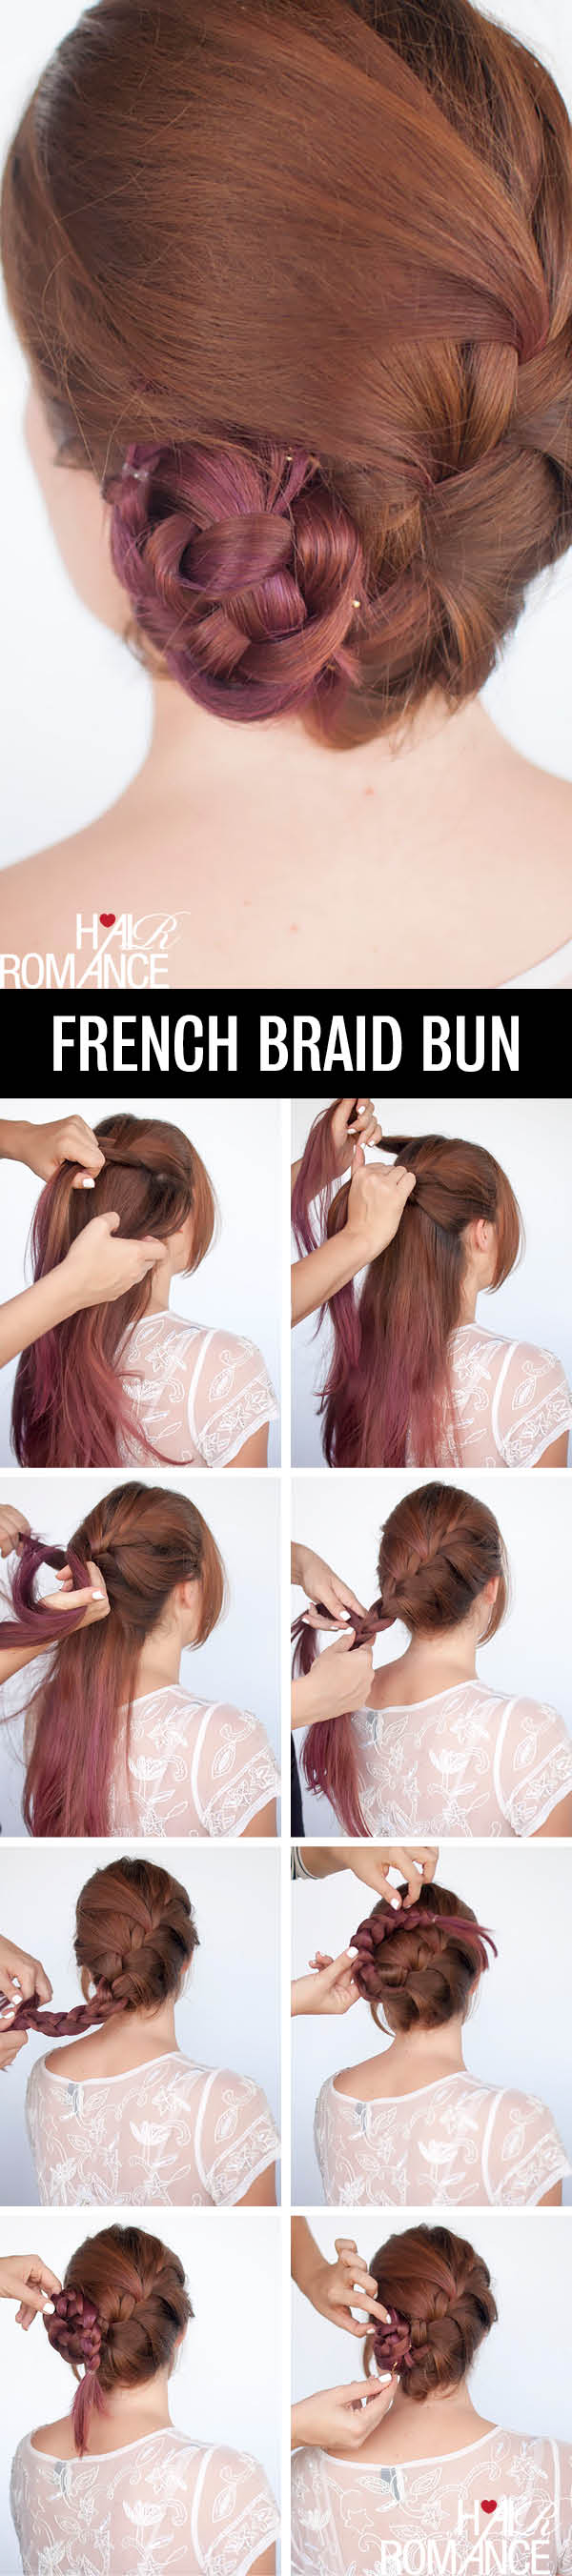 Hair Romance - French braid bun hairstyle tutorial